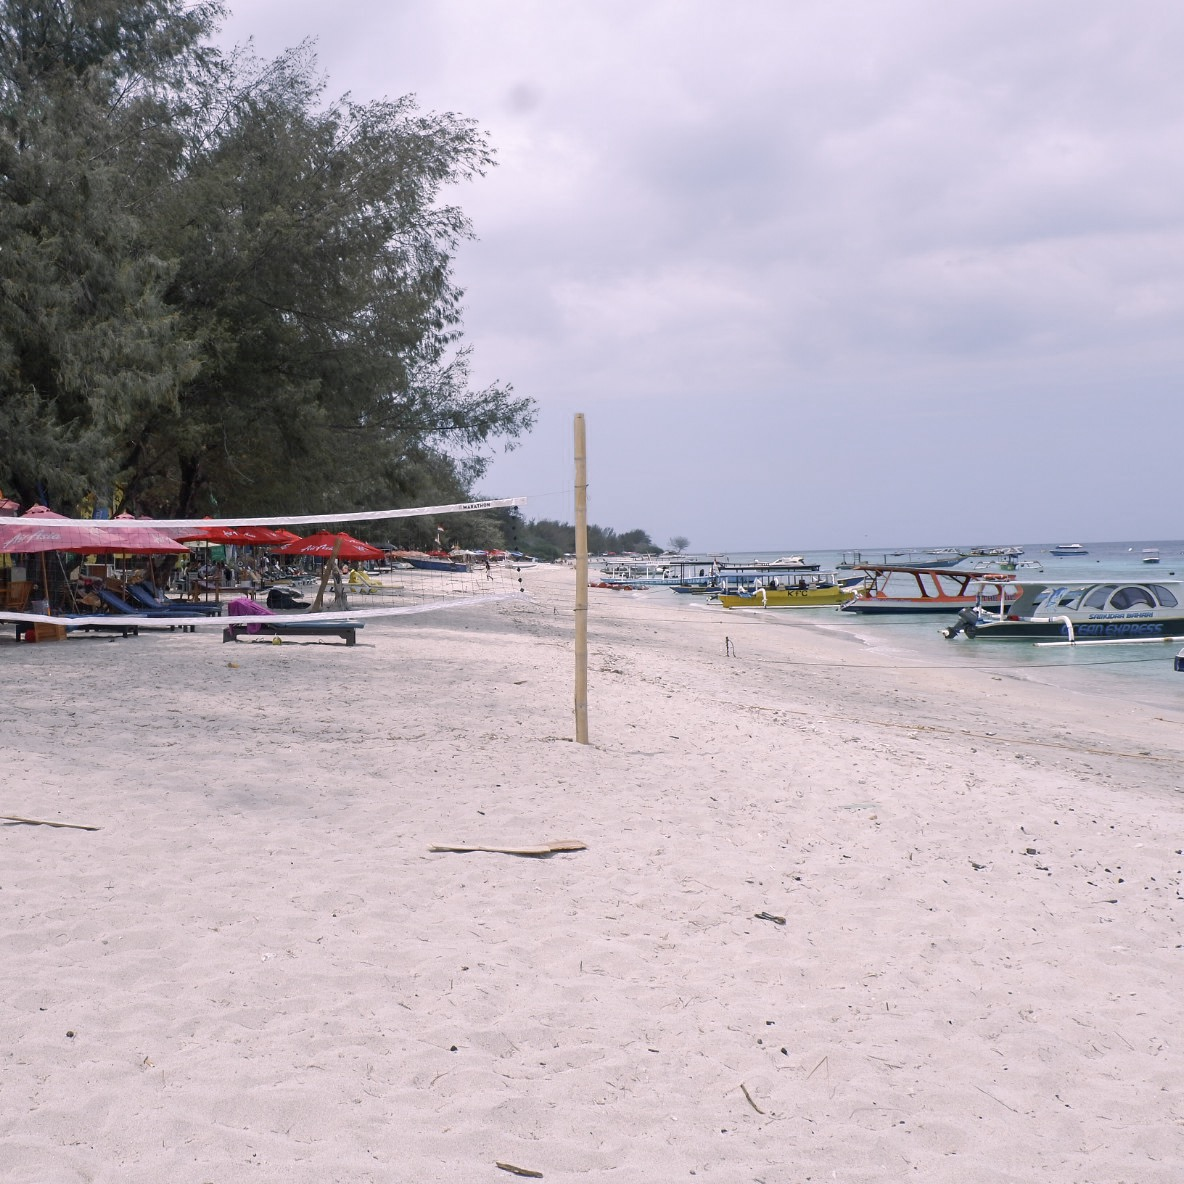 The beauty of Gili Trawangan